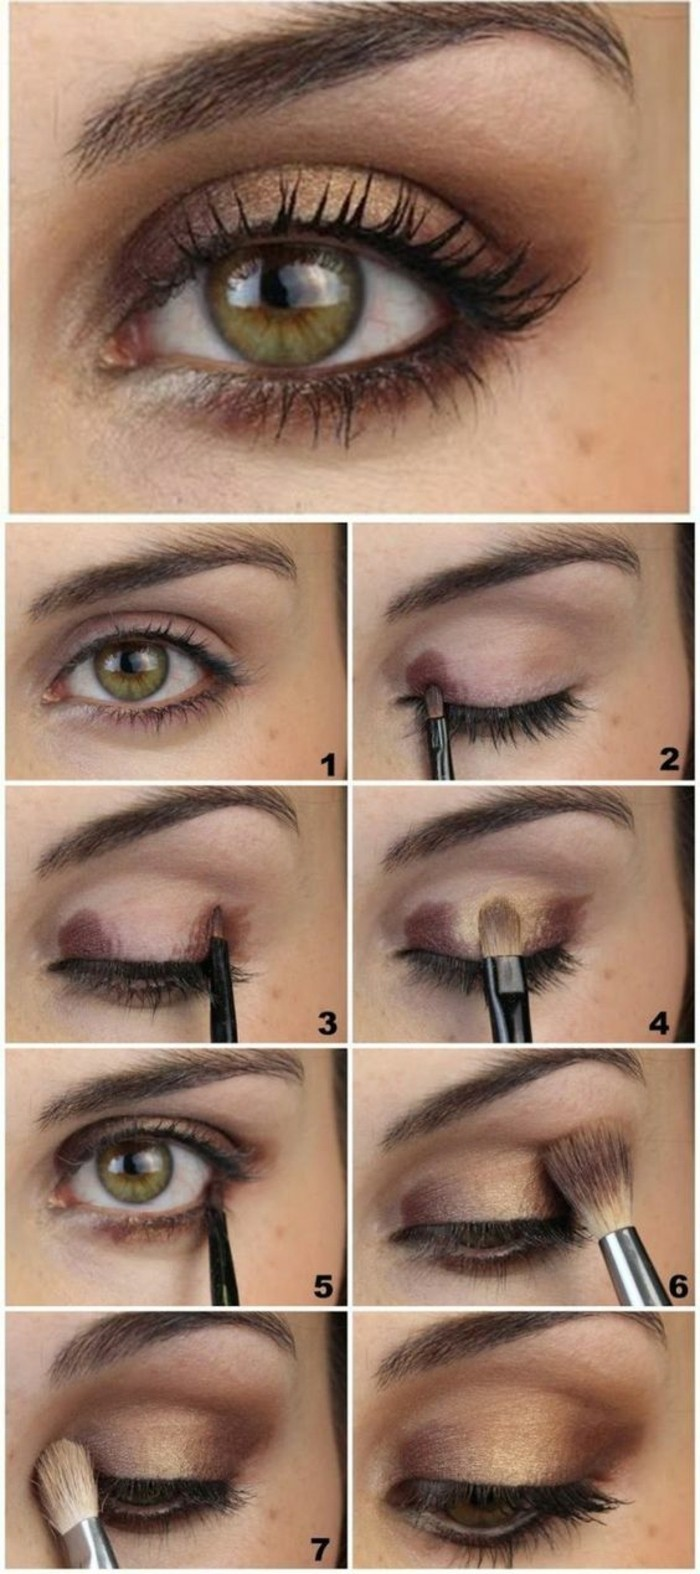 00-maquillage-yeux-de-biche-idees-tuto-maquillage-yeux-verts-idees